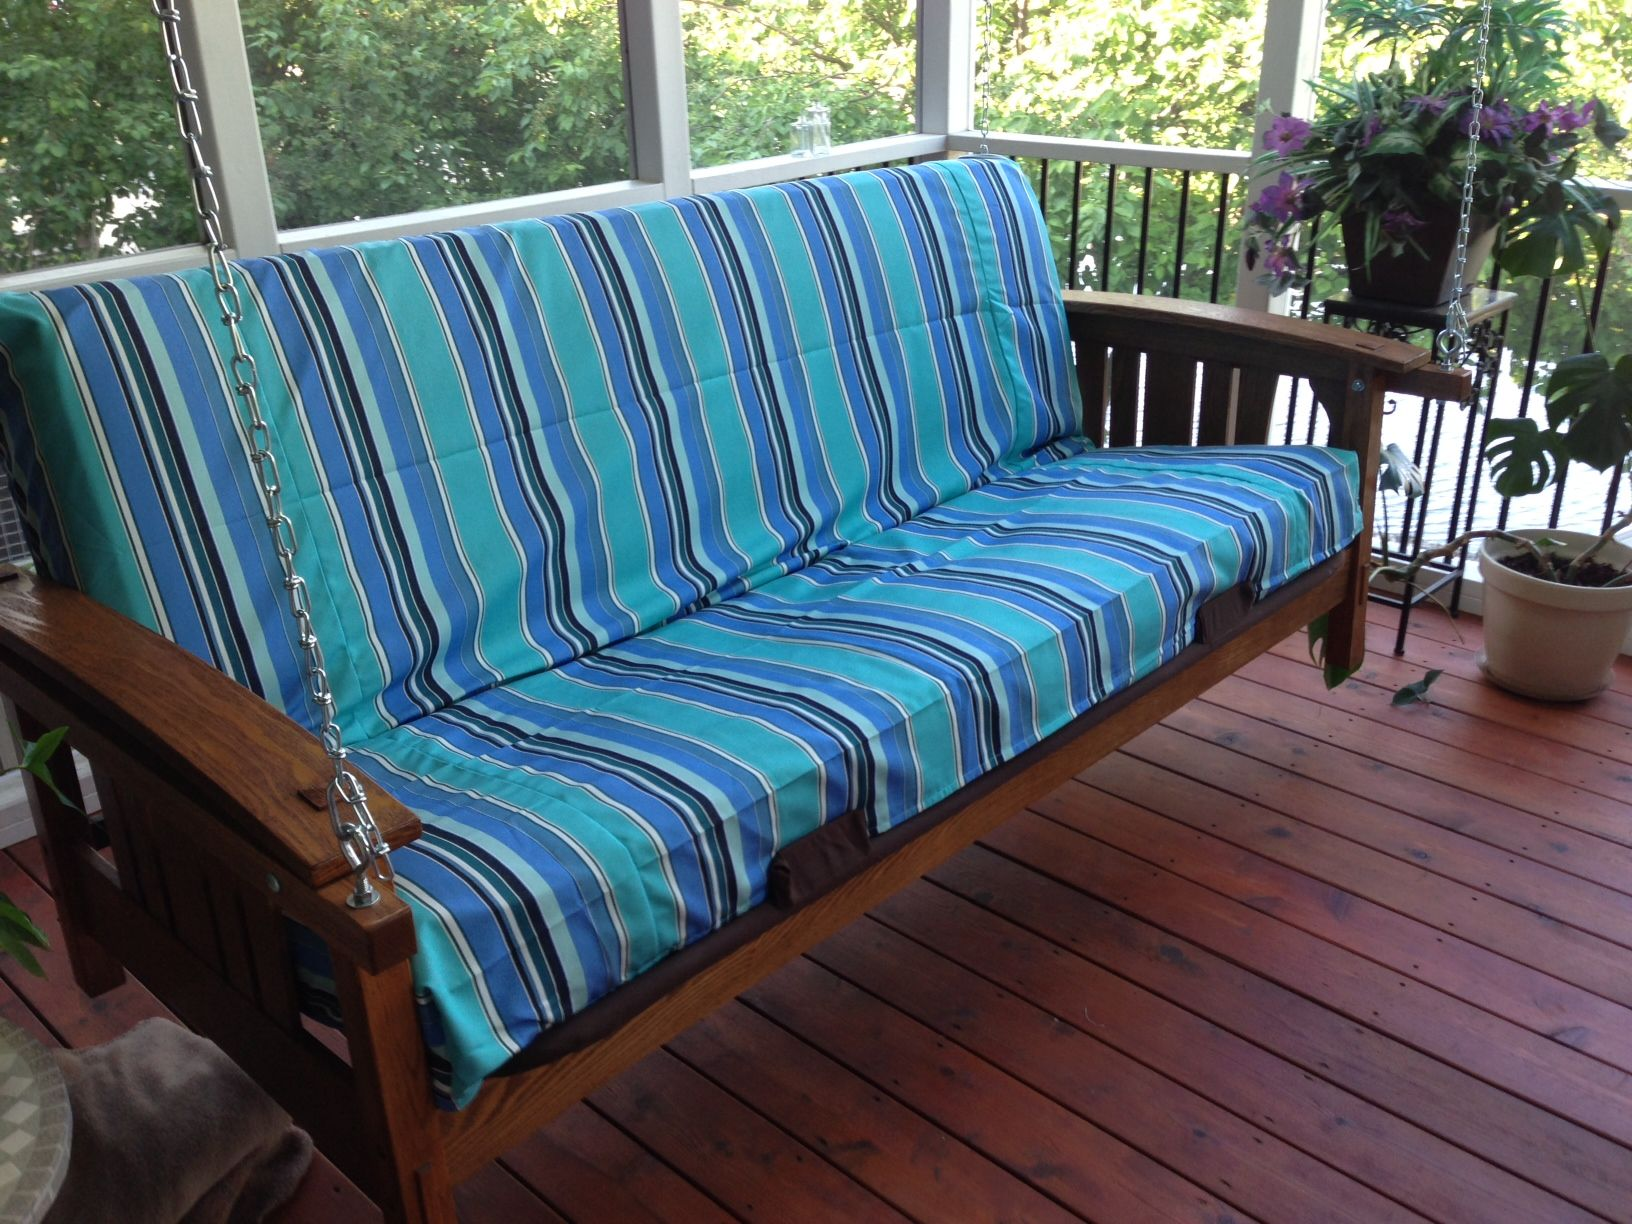 My Futon Porch Swing With Custom Sunbrella Fabric Removable Cover From Futons Net Diy Futon Futon Bed Futon Living Room